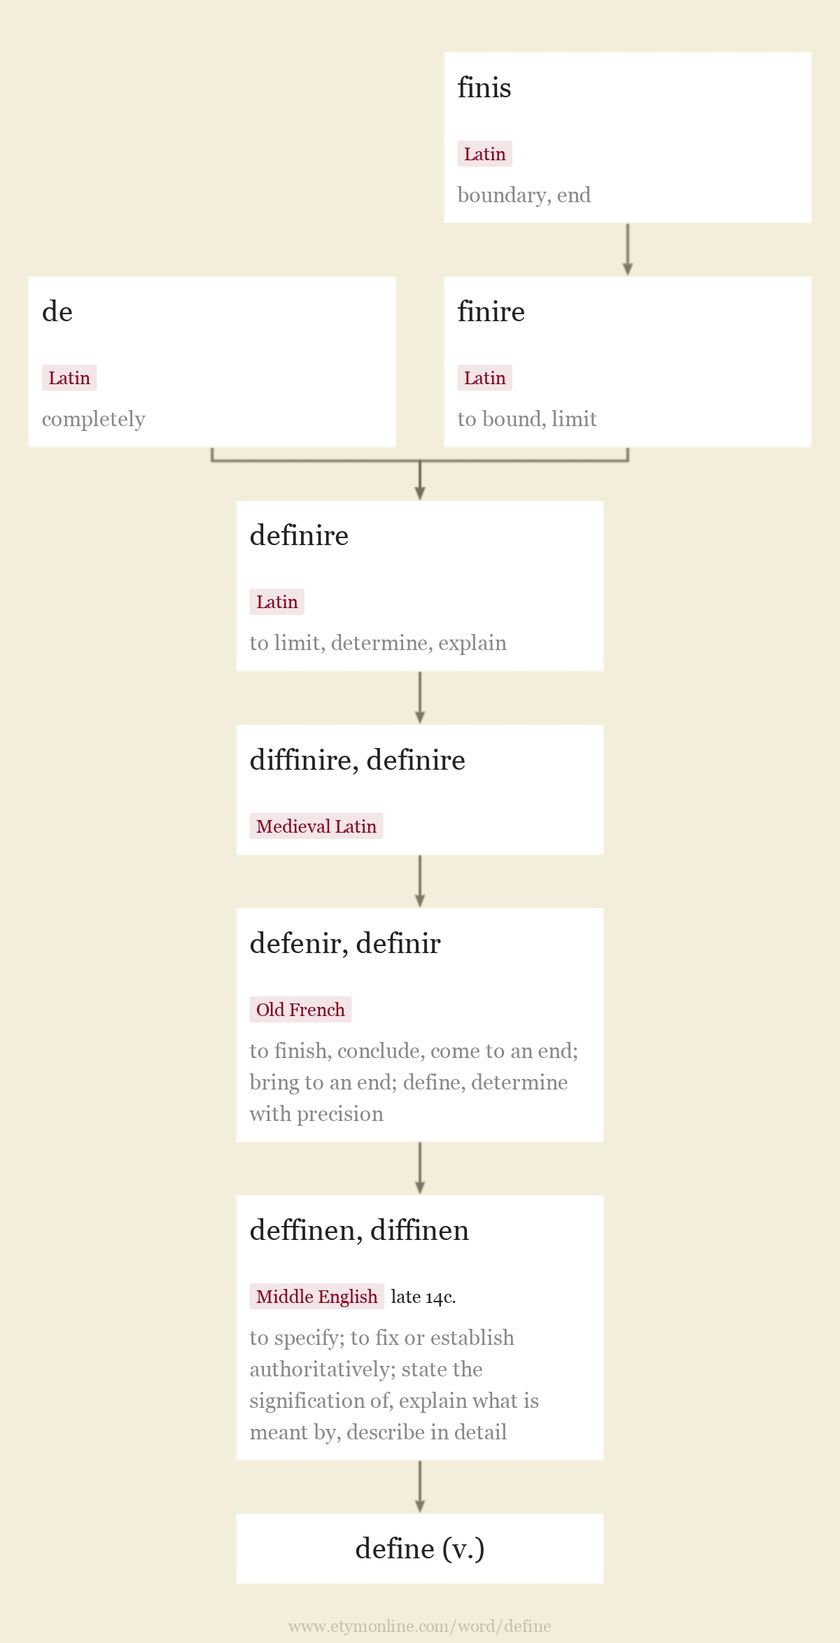 Origin and meaning of define